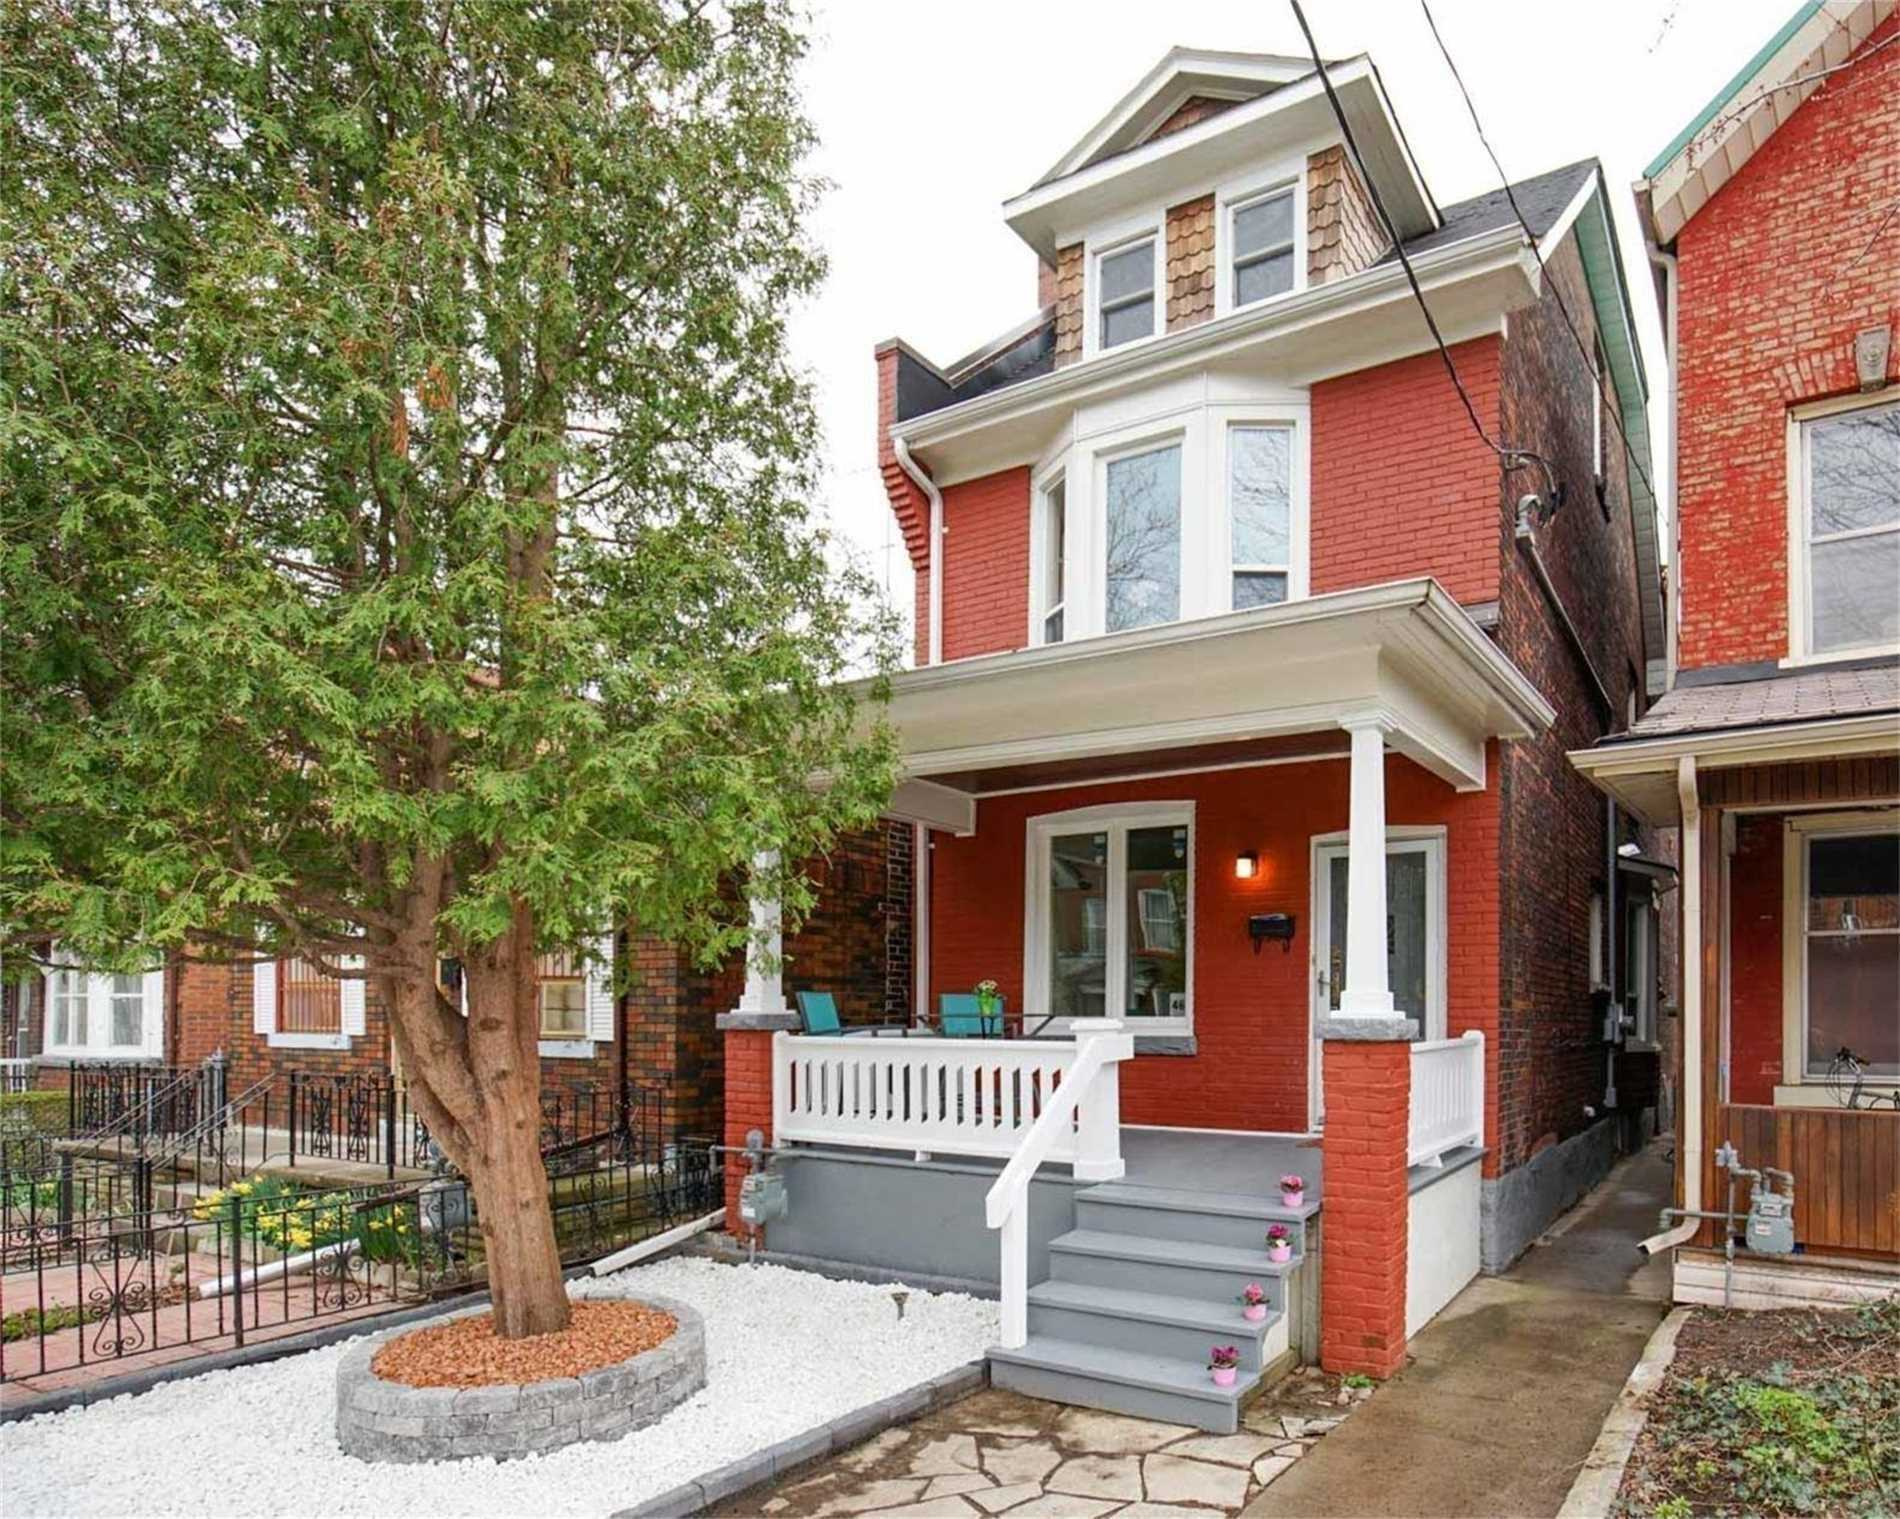 Detached house For Lease In Toronto - 46 Euclid Ave, Toronto, Ontario, Canada M6J2J6 , 4 Bedrooms Bedrooms, ,1 BathroomBathrooms,Detached,For Lease,B,Euclid